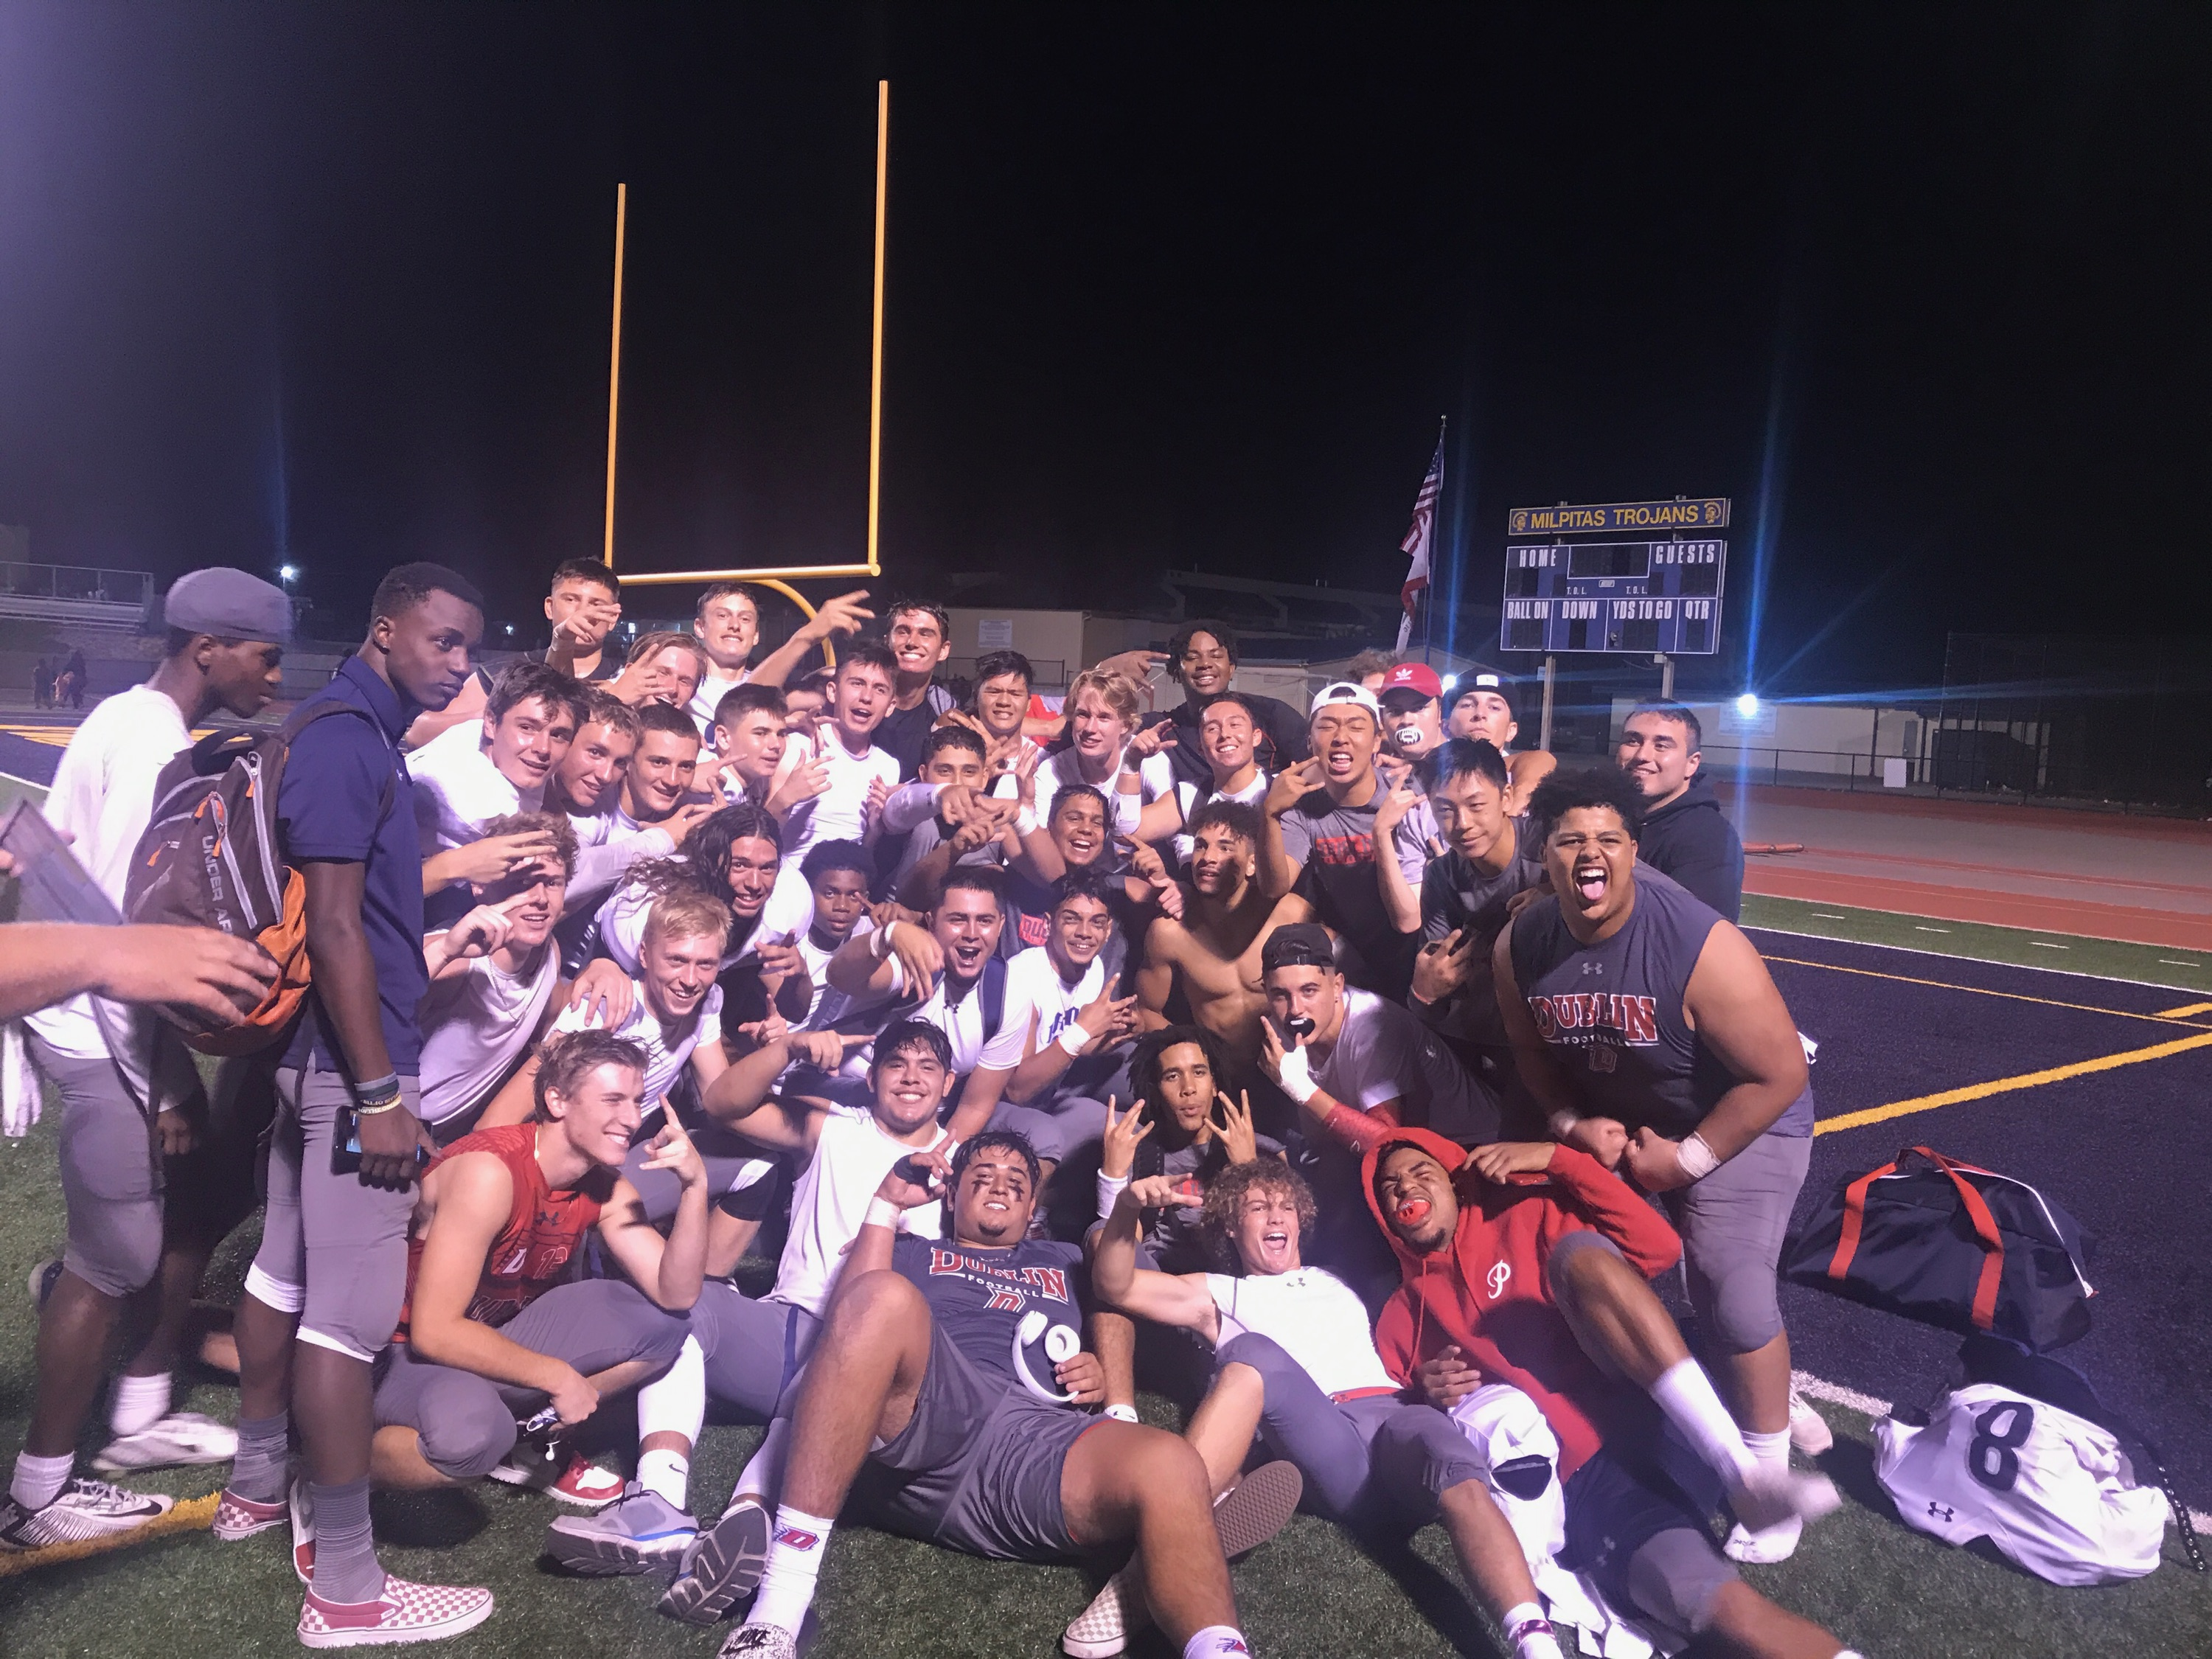 The Gaels had a great win last night over Milpitas! 22-21 Go Gaels!